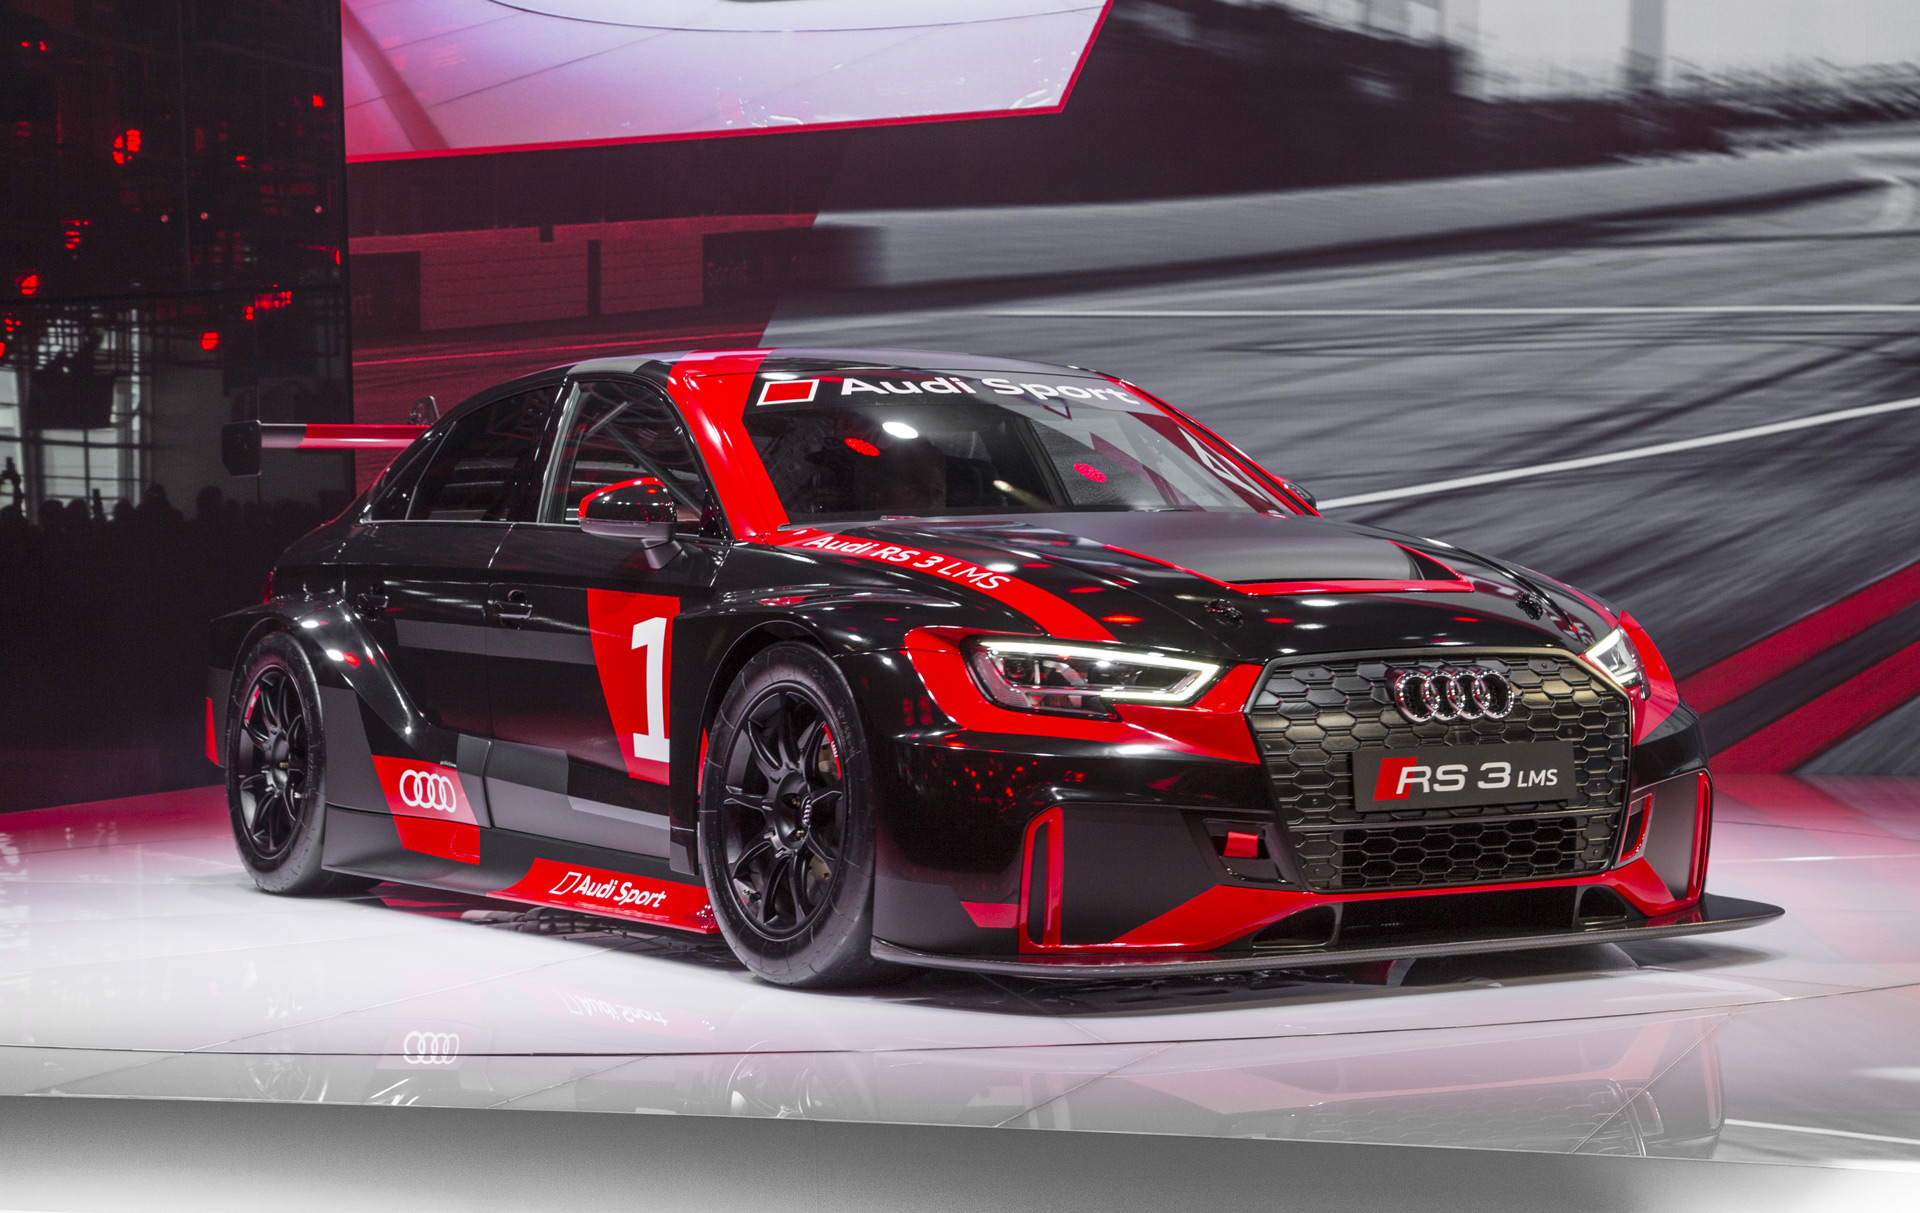 2017 Audi Rs 3 Lms Ready To Race